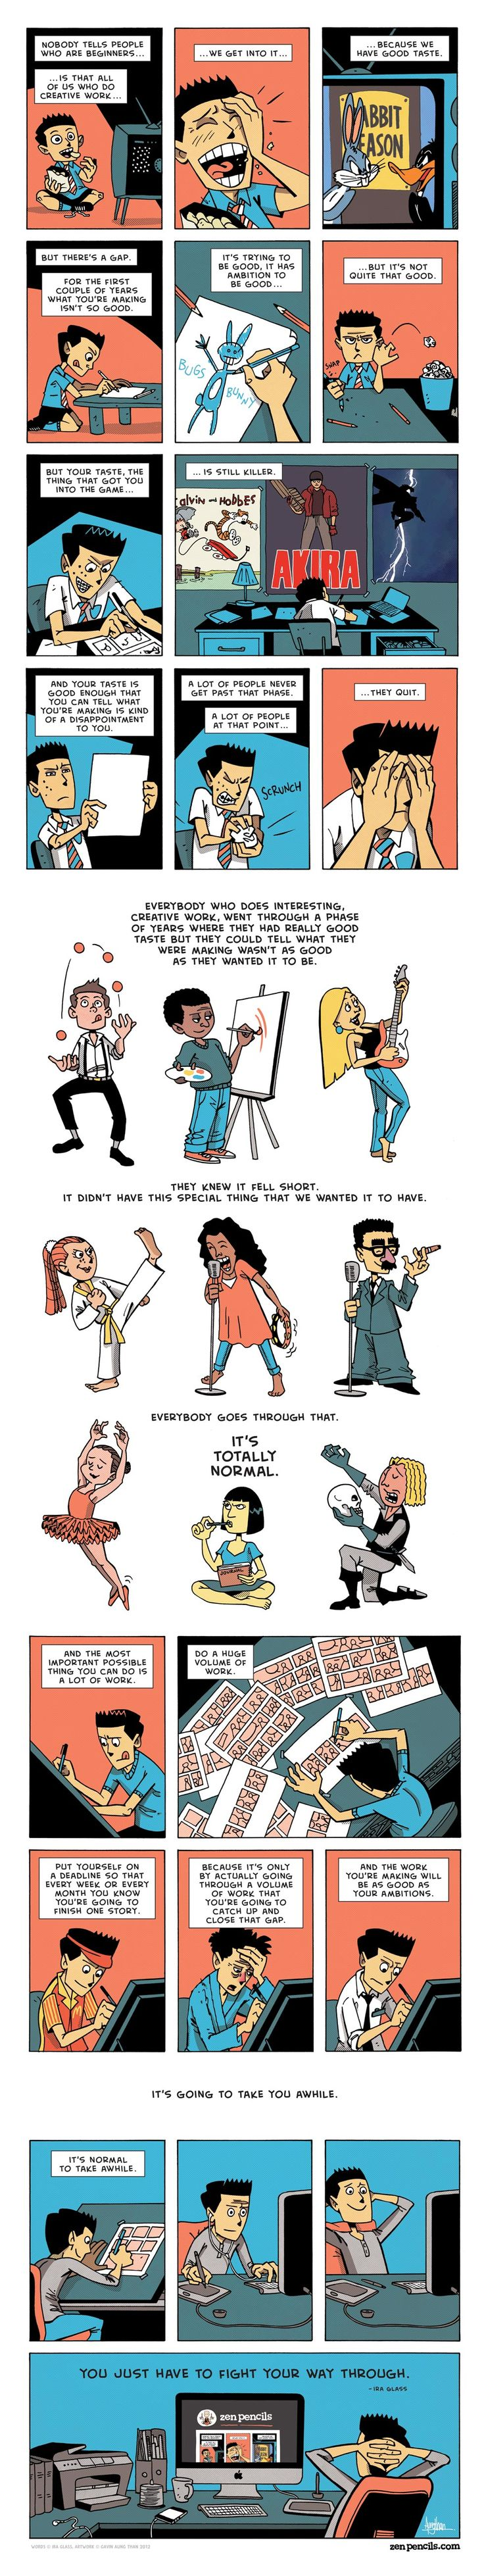 "IRA GLASS: Advice for beginners.  ""For the 1st couple of years what you're making isn't so good"" --Ira Glass' advice for beginners illustrated by @zenpencils http://zenpencils.com/comic/90-ira-glass-advice-for-beginners/ @zenpencils"